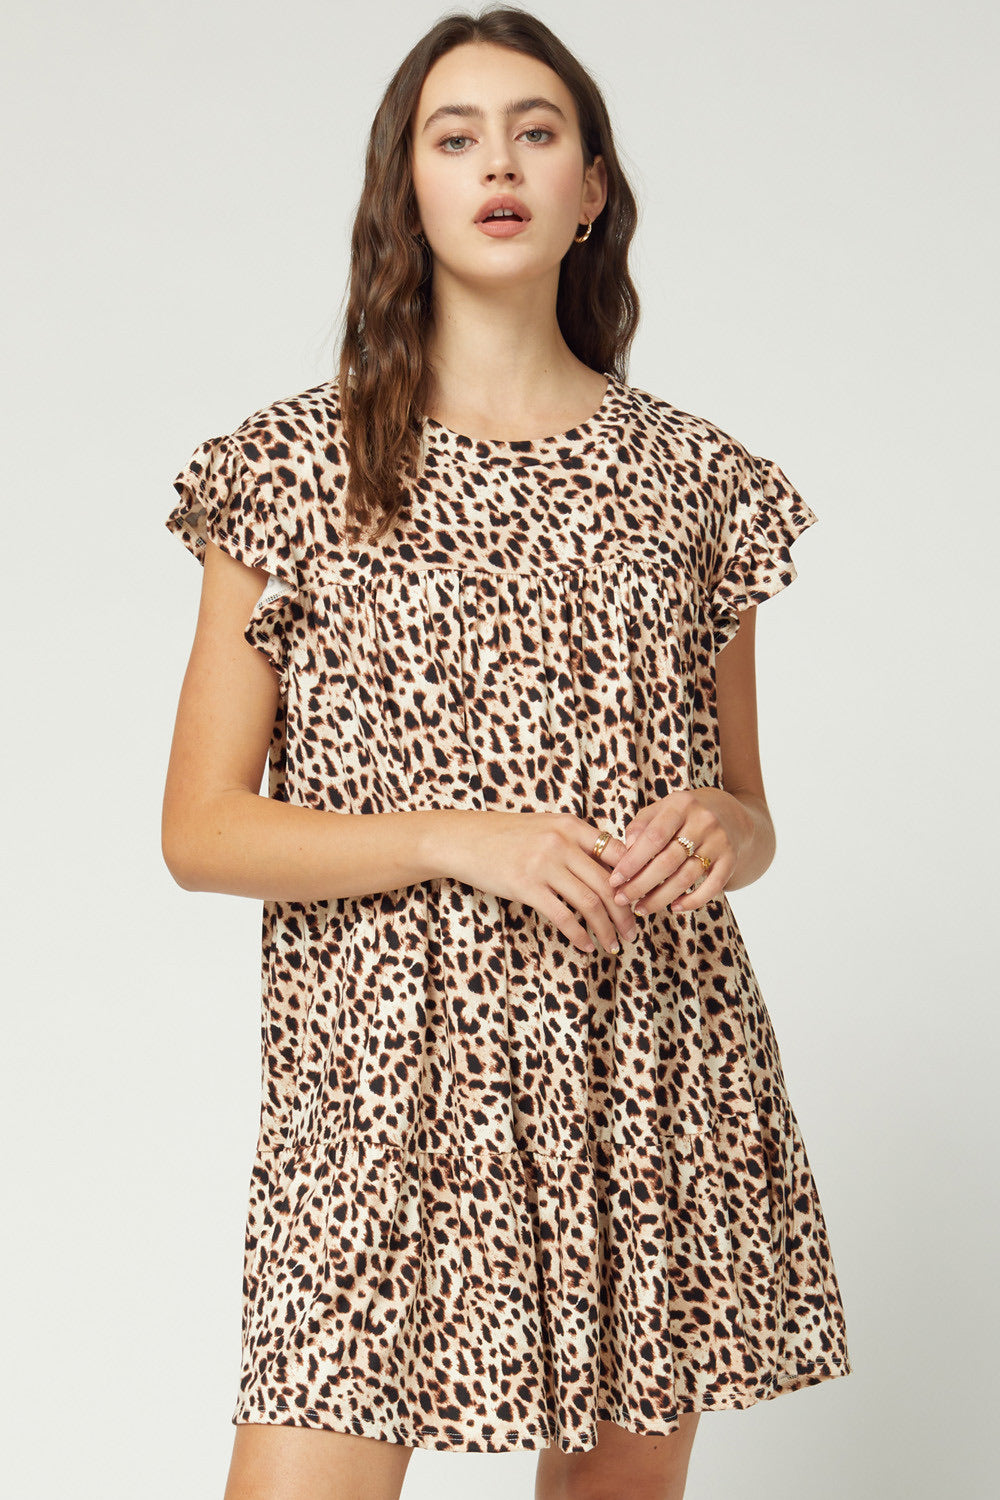 Ready Set Pounce Tiered Leopard Print Dress